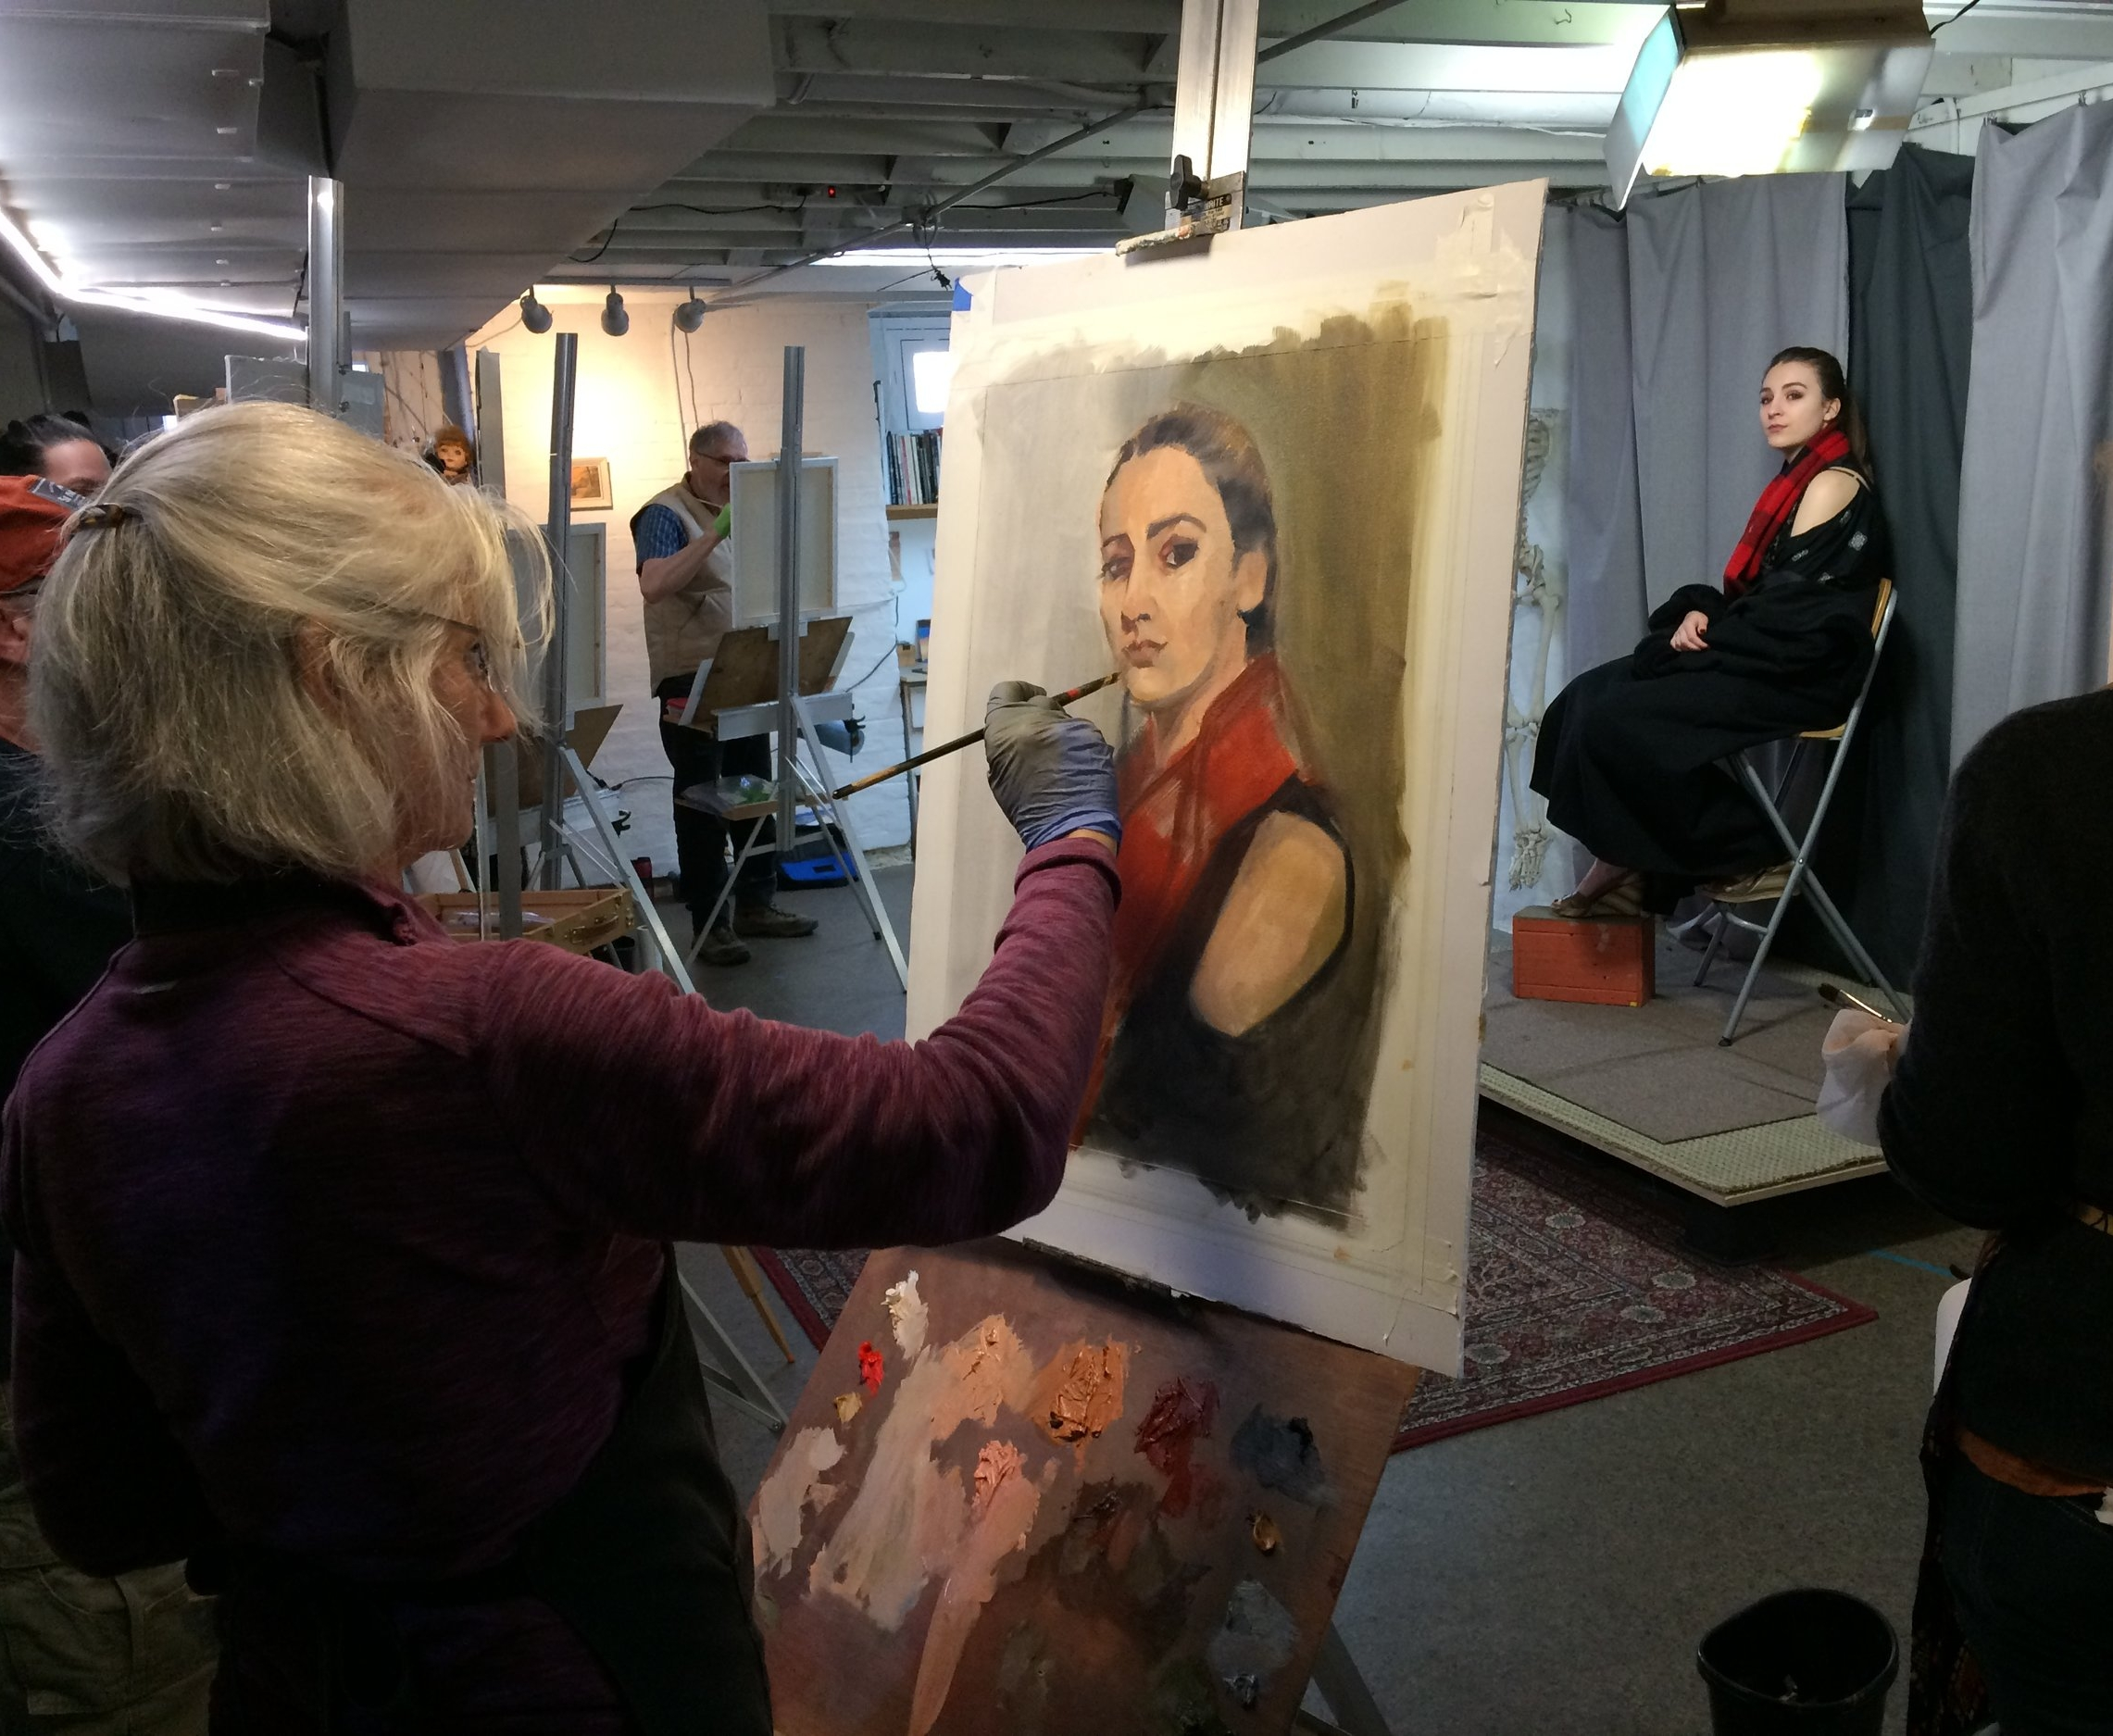 Portrait Painting - Regardless of style you'll benefit from using the alla prima approach and other essential concepts of portrait painting.